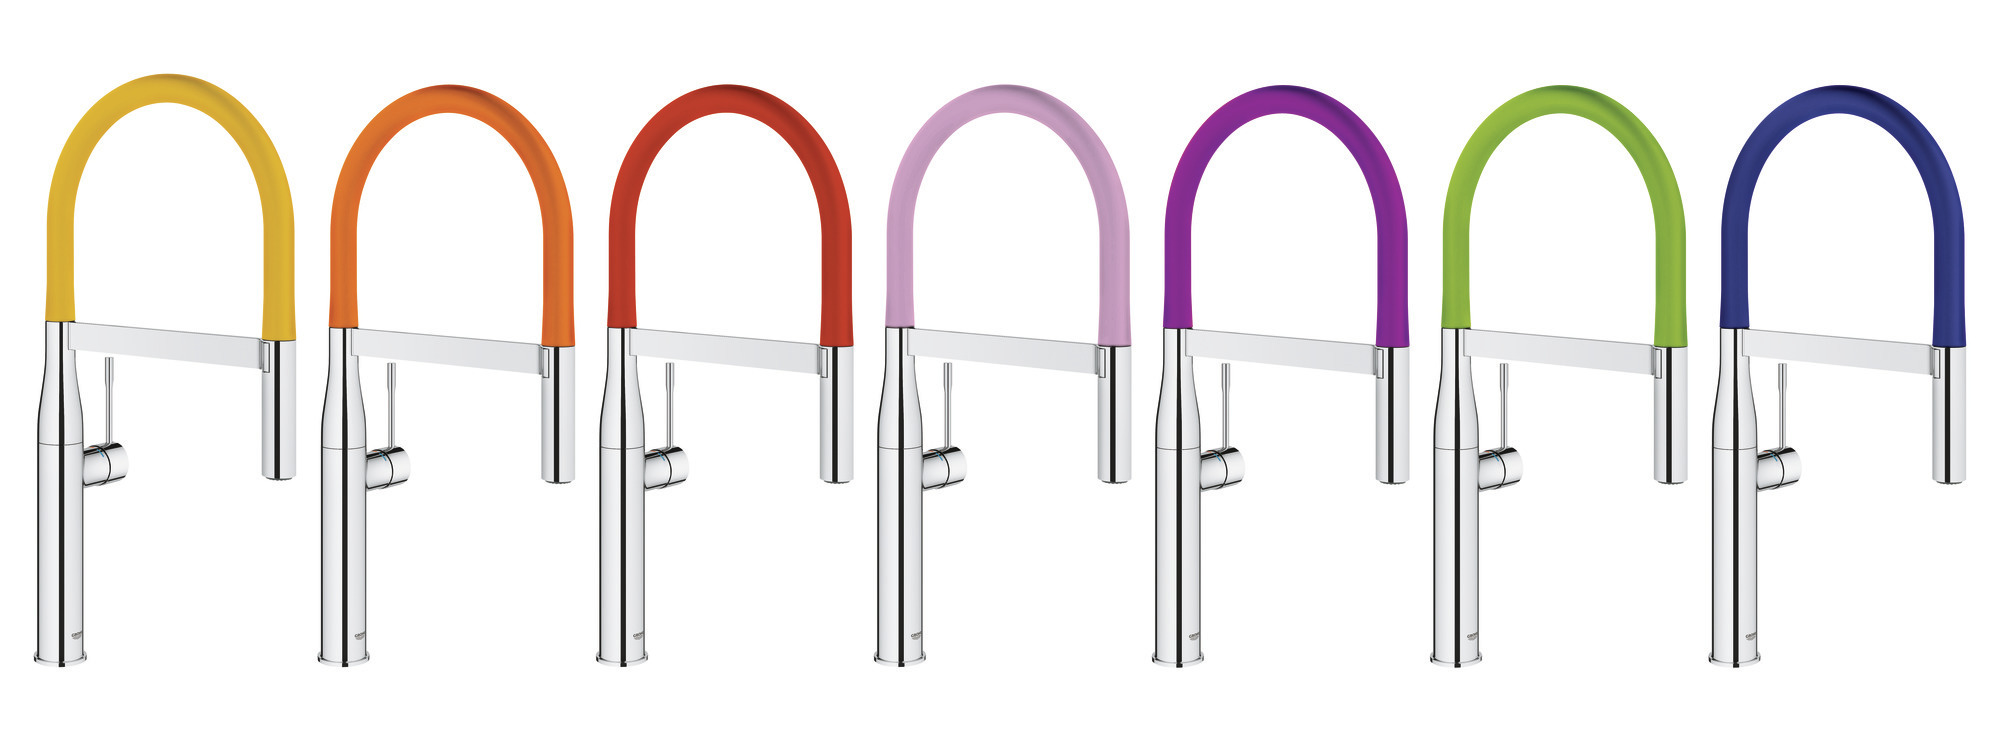 Grohe Launches Colorful Faucet Collection Builder